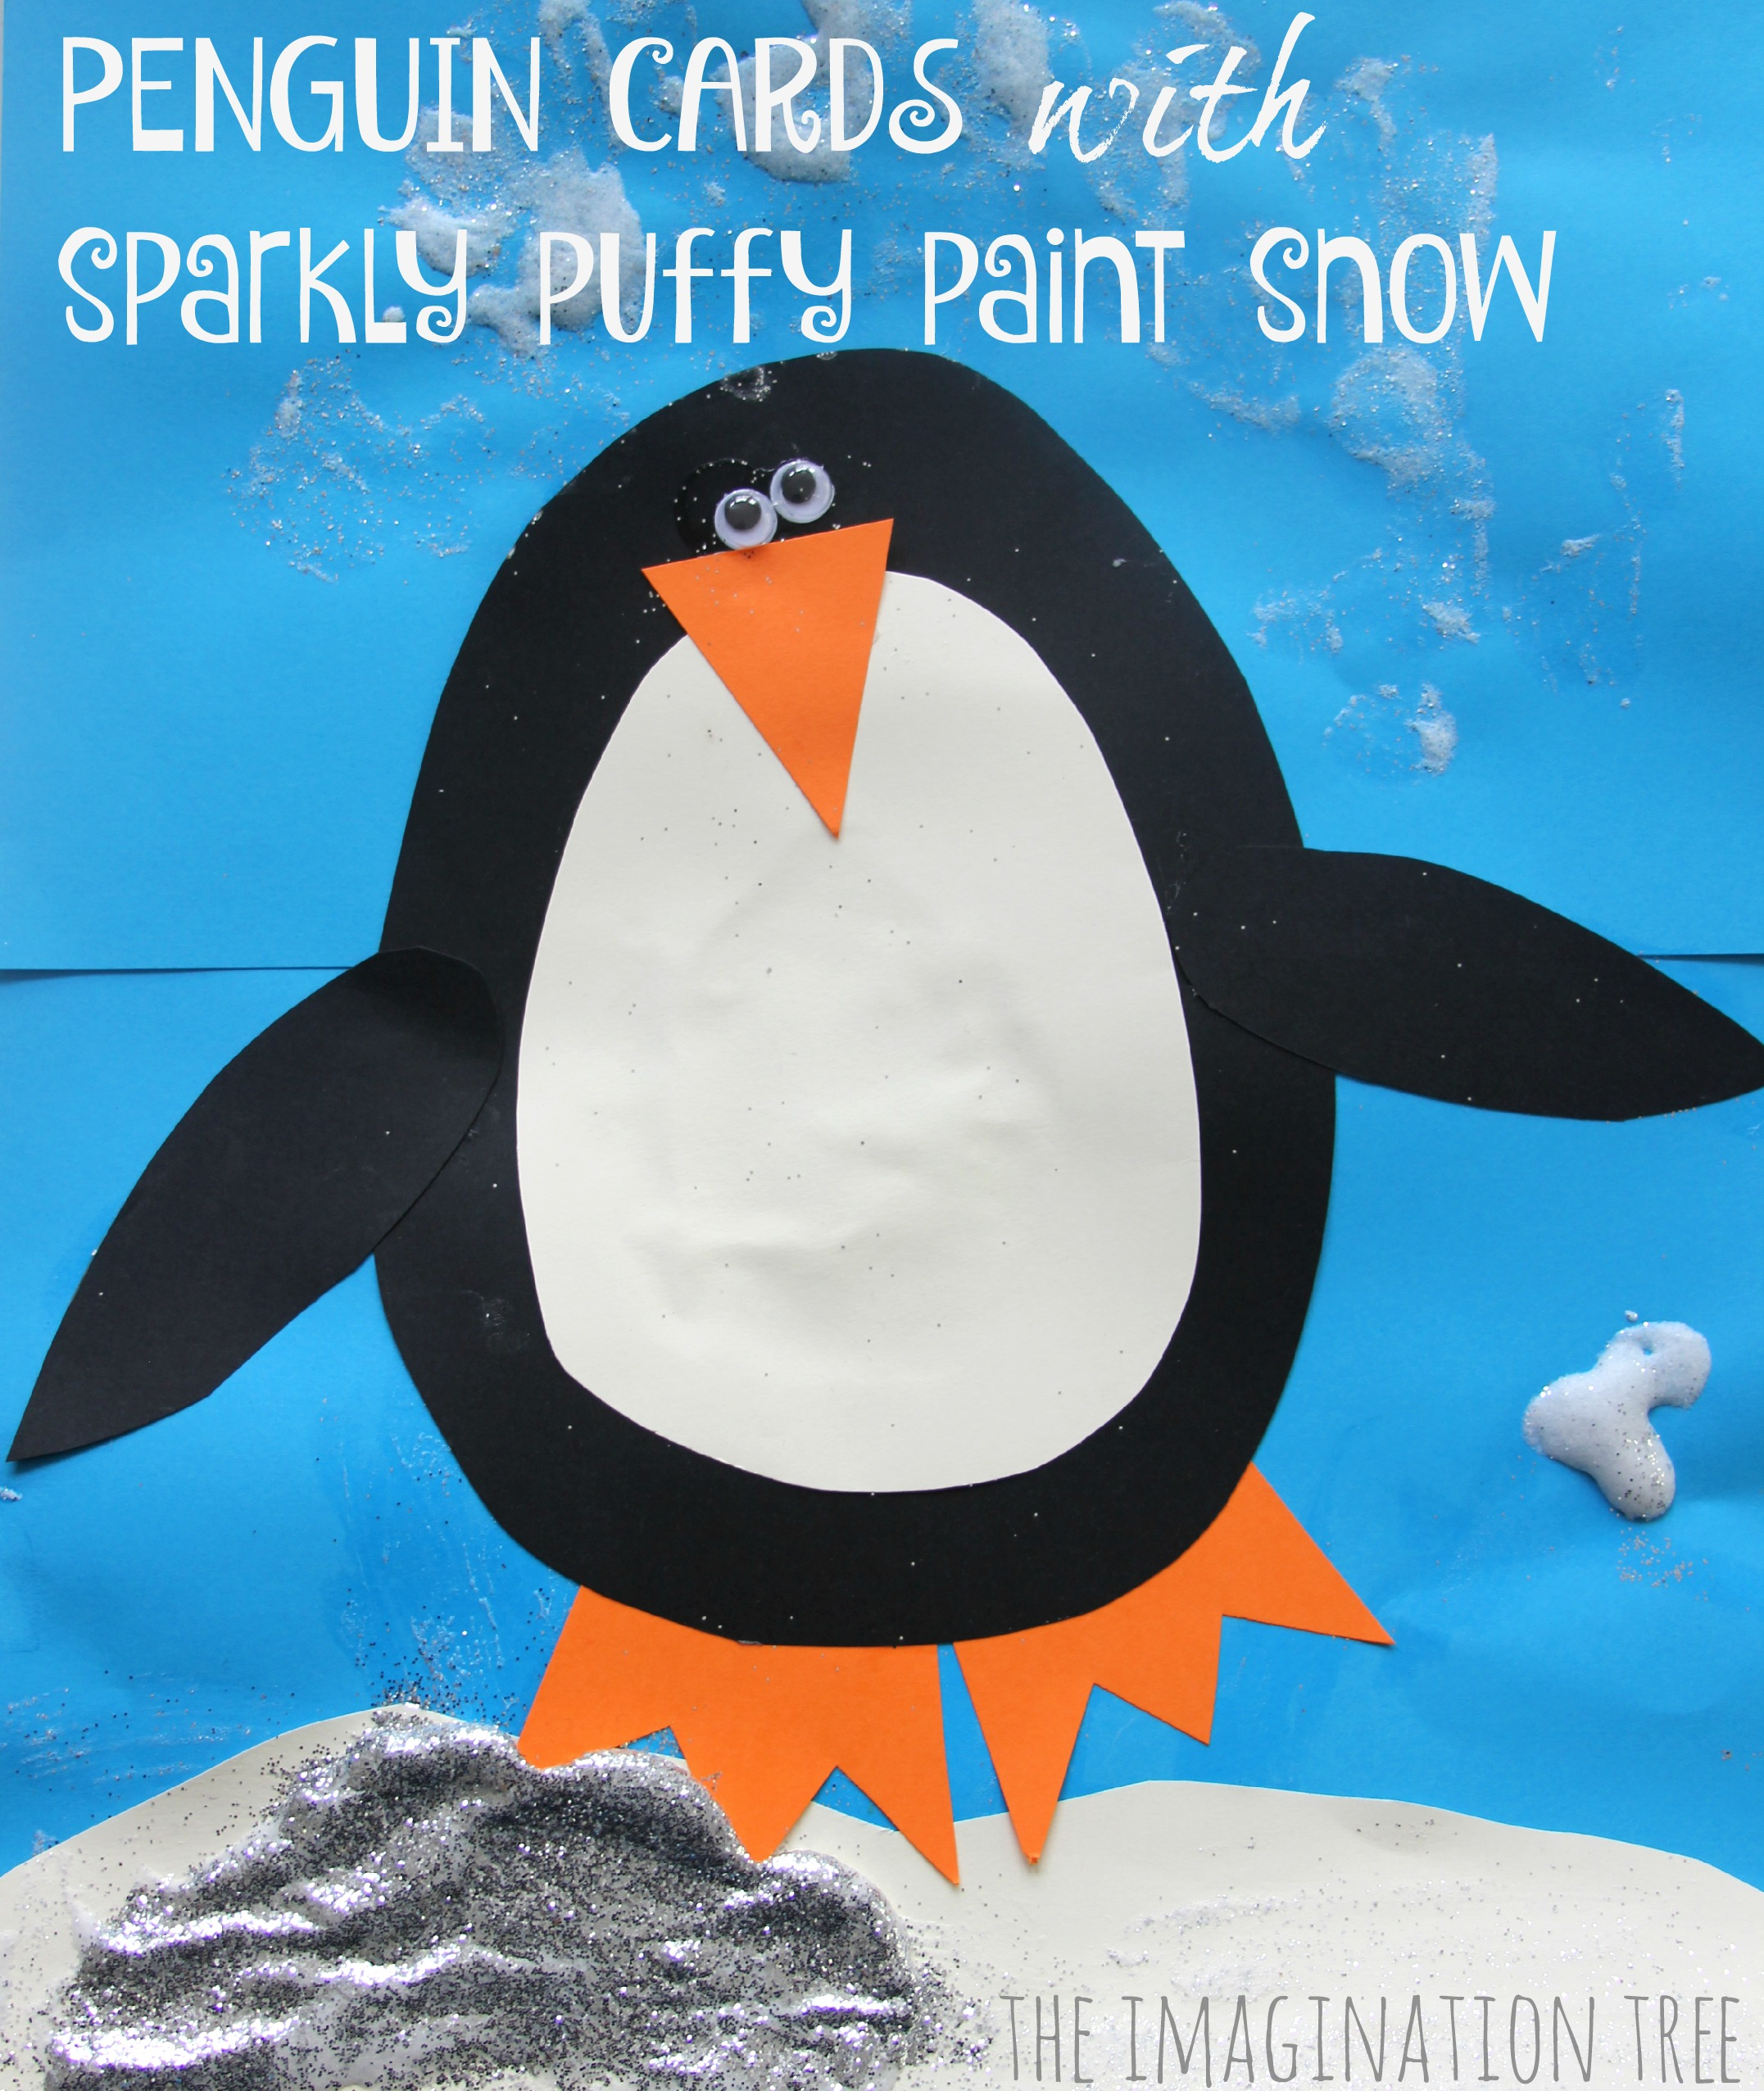 Penguin Christmas Card with Puffy Paint Snow - The Imagination Tree